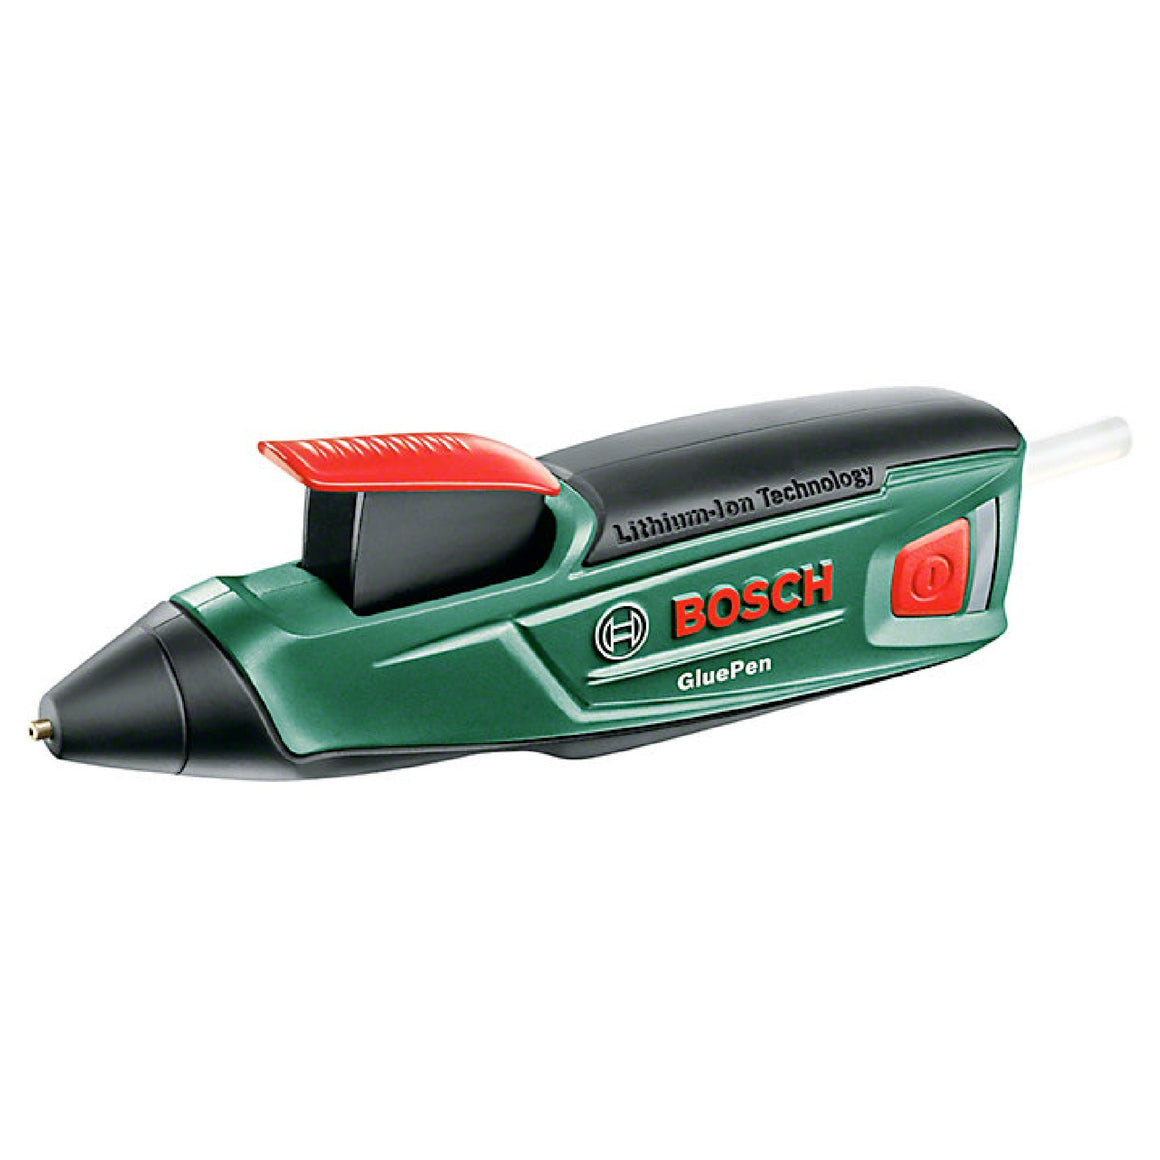 Bosch Cordless Lithium-ion Glue Pen & FREE glue sticks